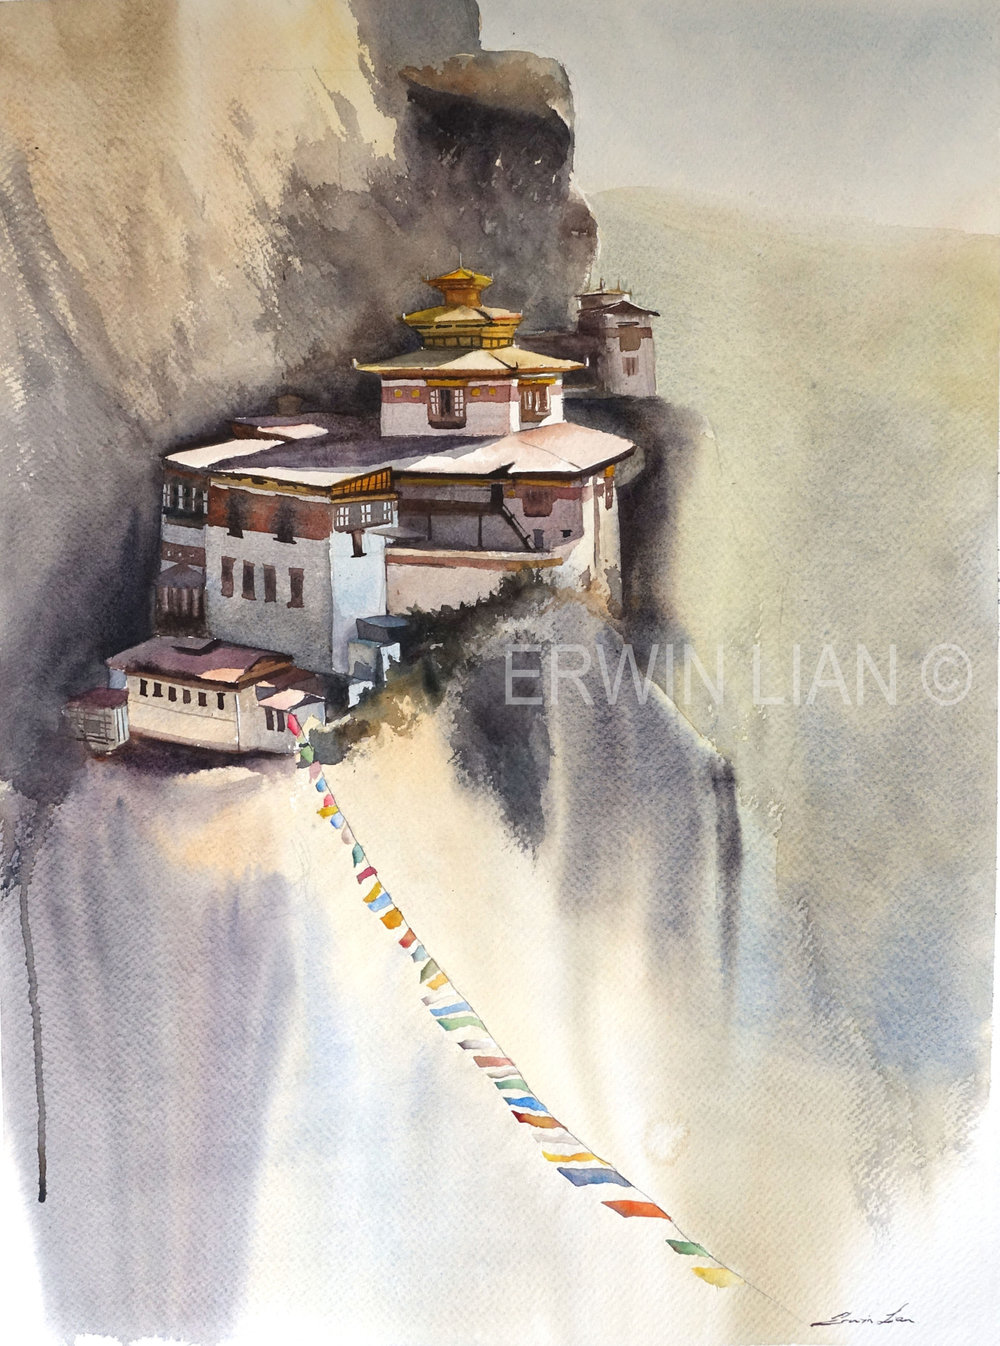 Tiger's Nest, 54cm x 74 cm, Transparent Watercolor